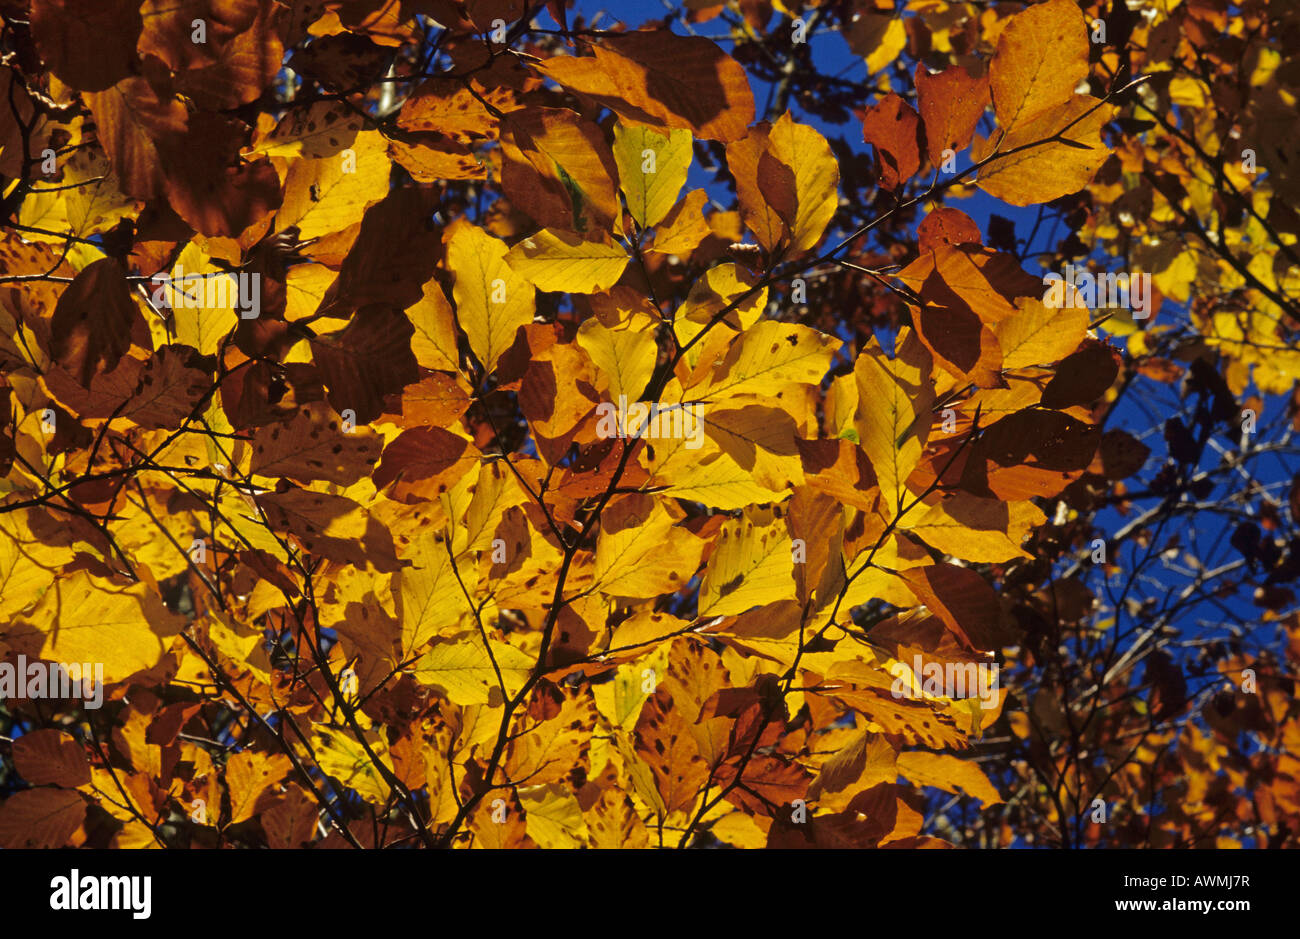 Common beech leaves in autumn colours (Fagus sylvatica) - Stock Image